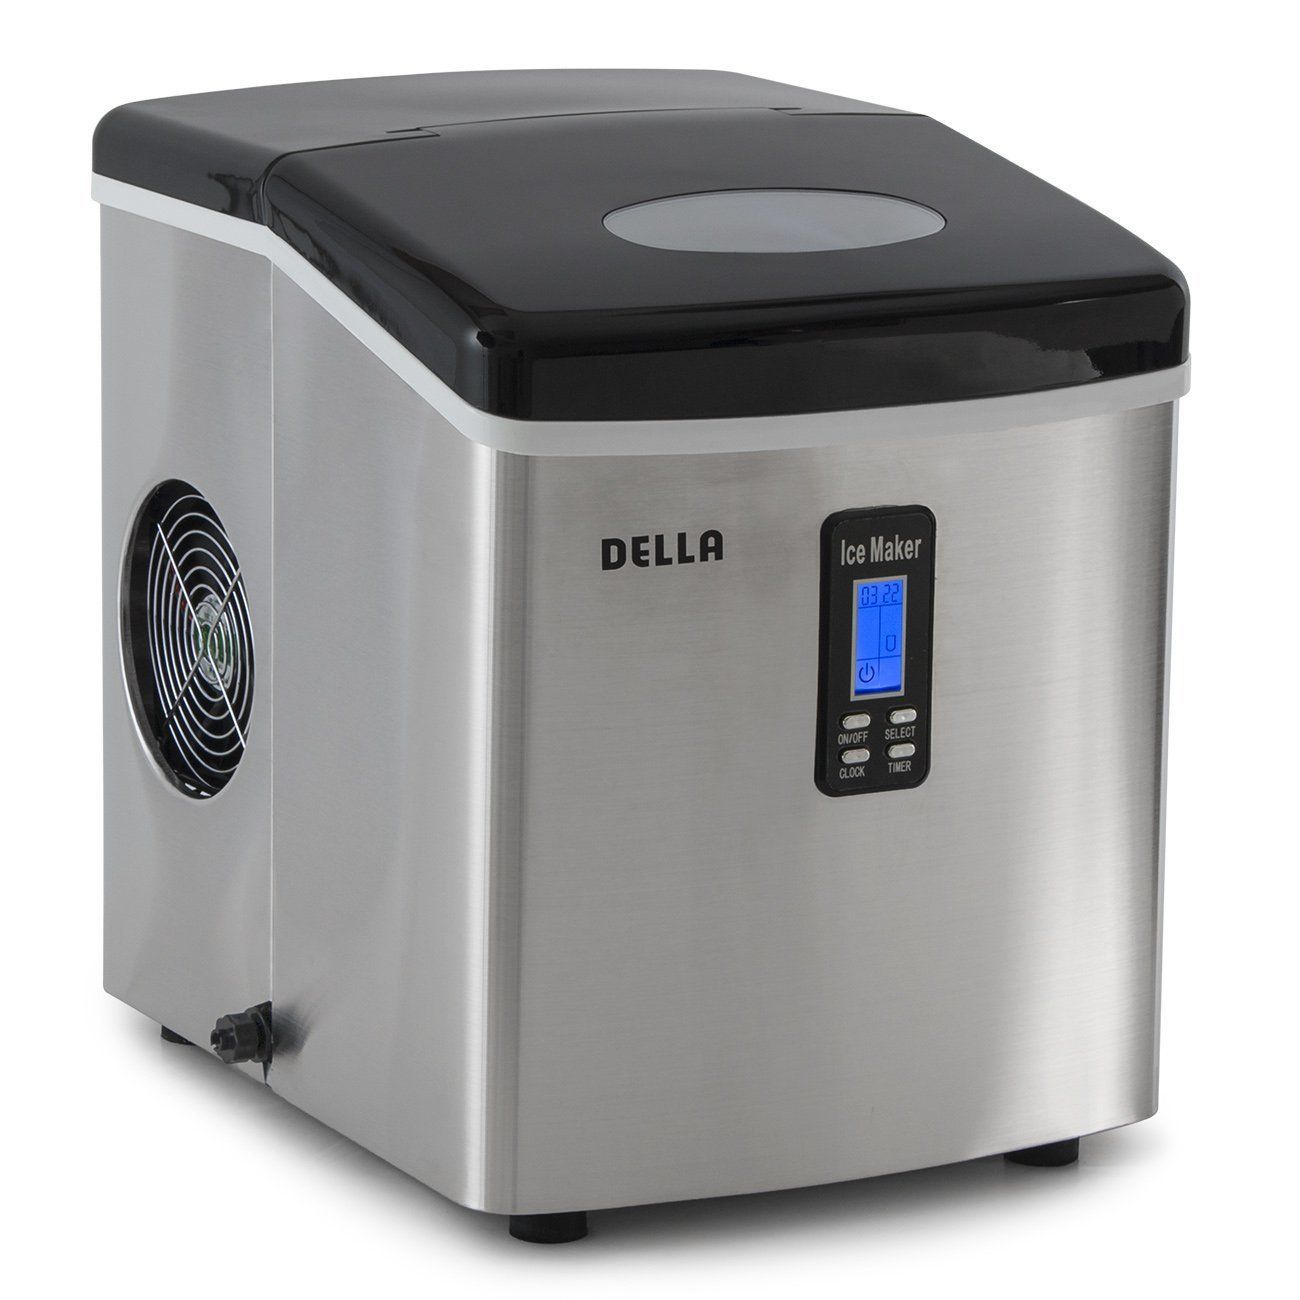 Della 048 Gm 48292 Electric Ice Maker Machine Counter Top Timer